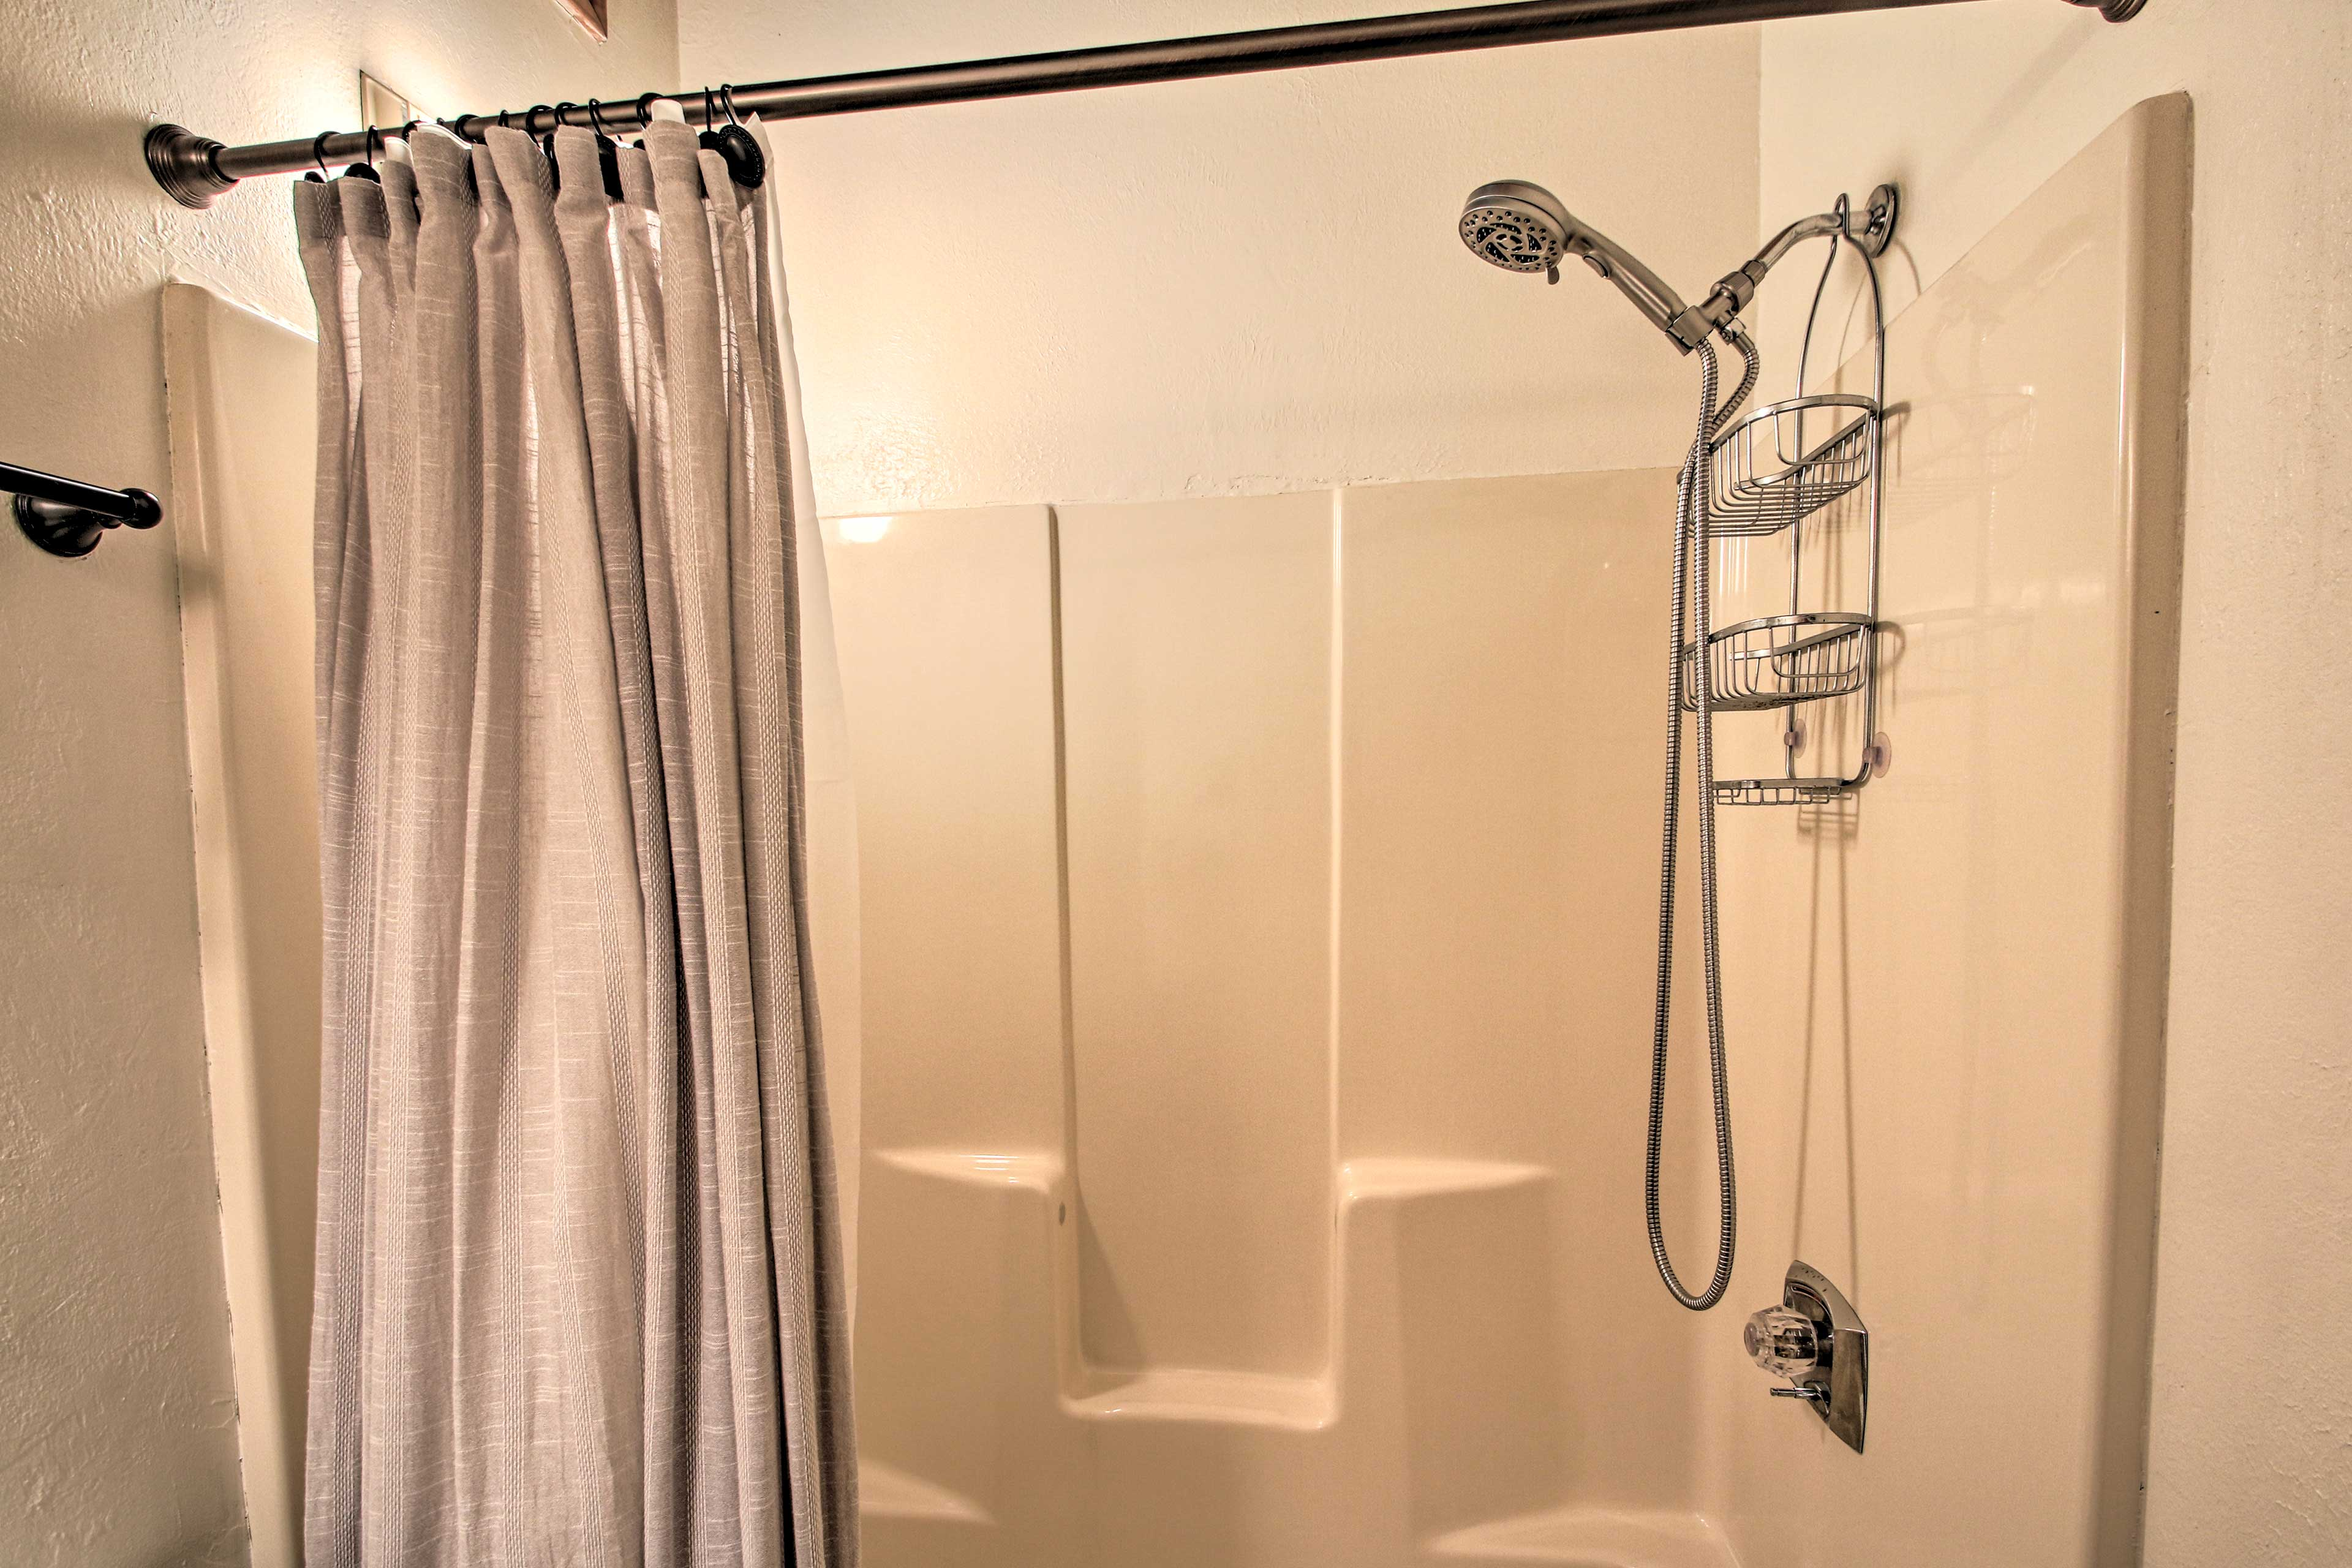 The new shower offers a detachable shower head.